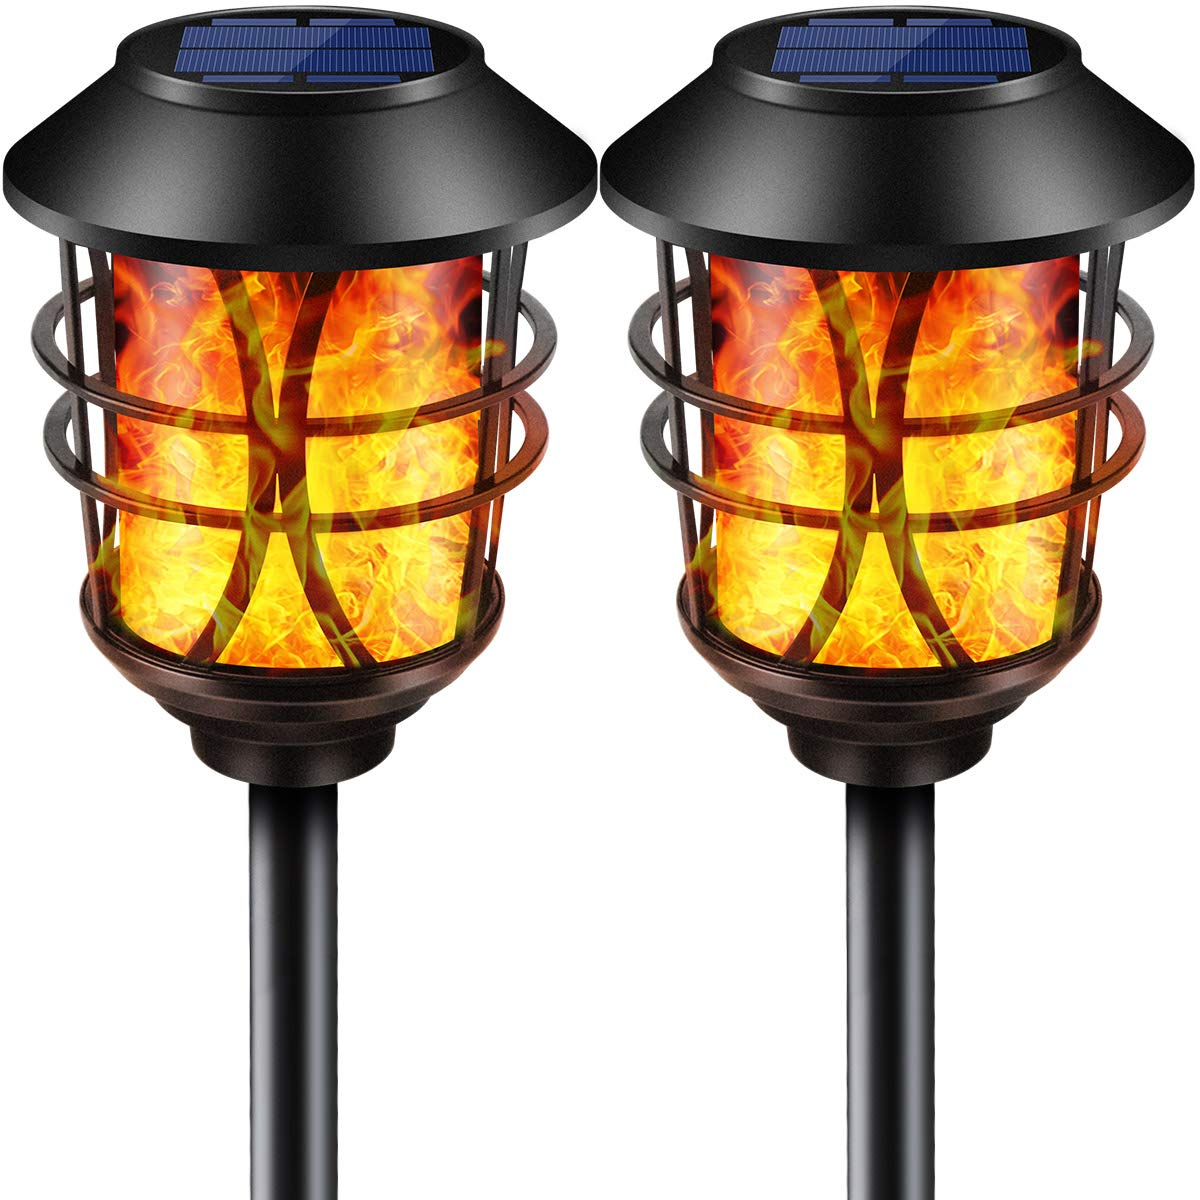 TomCare Solar Lights Metal Flickering Flame Solar Torches Lights Waterproof Outdoor Heavy Duty Lighting Solar Pathway Lights Landscape Lighting Dusk to Dawn Auto On/Off for Garden Patio Yard, 2 Pack by TomCare (Image #1)